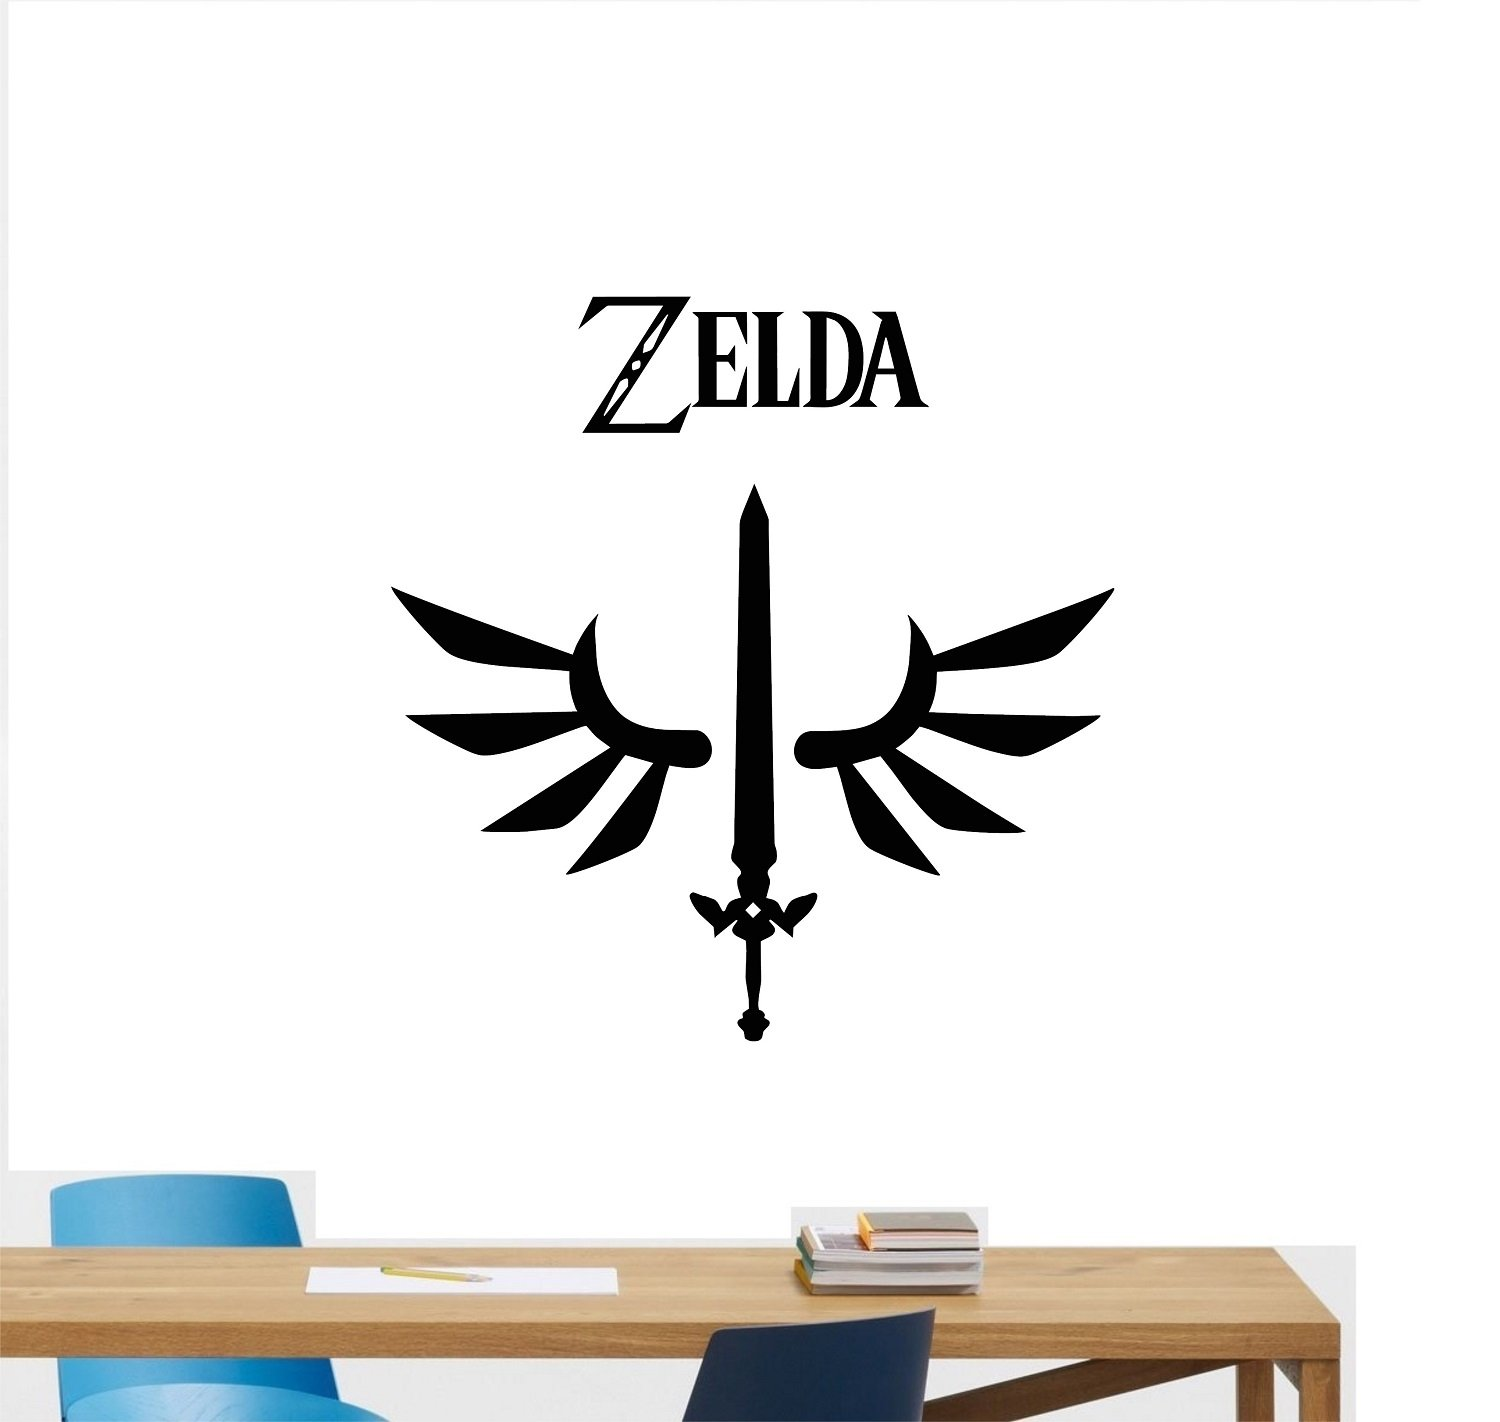 Legend Of Zelda Wall Decal Triforce Symbol Gift Gaming Gamer Movie Video Game Poster Vinyl Sticker Kids Teen Boy Room Nursery Bedroom Wall Art Decor Mural